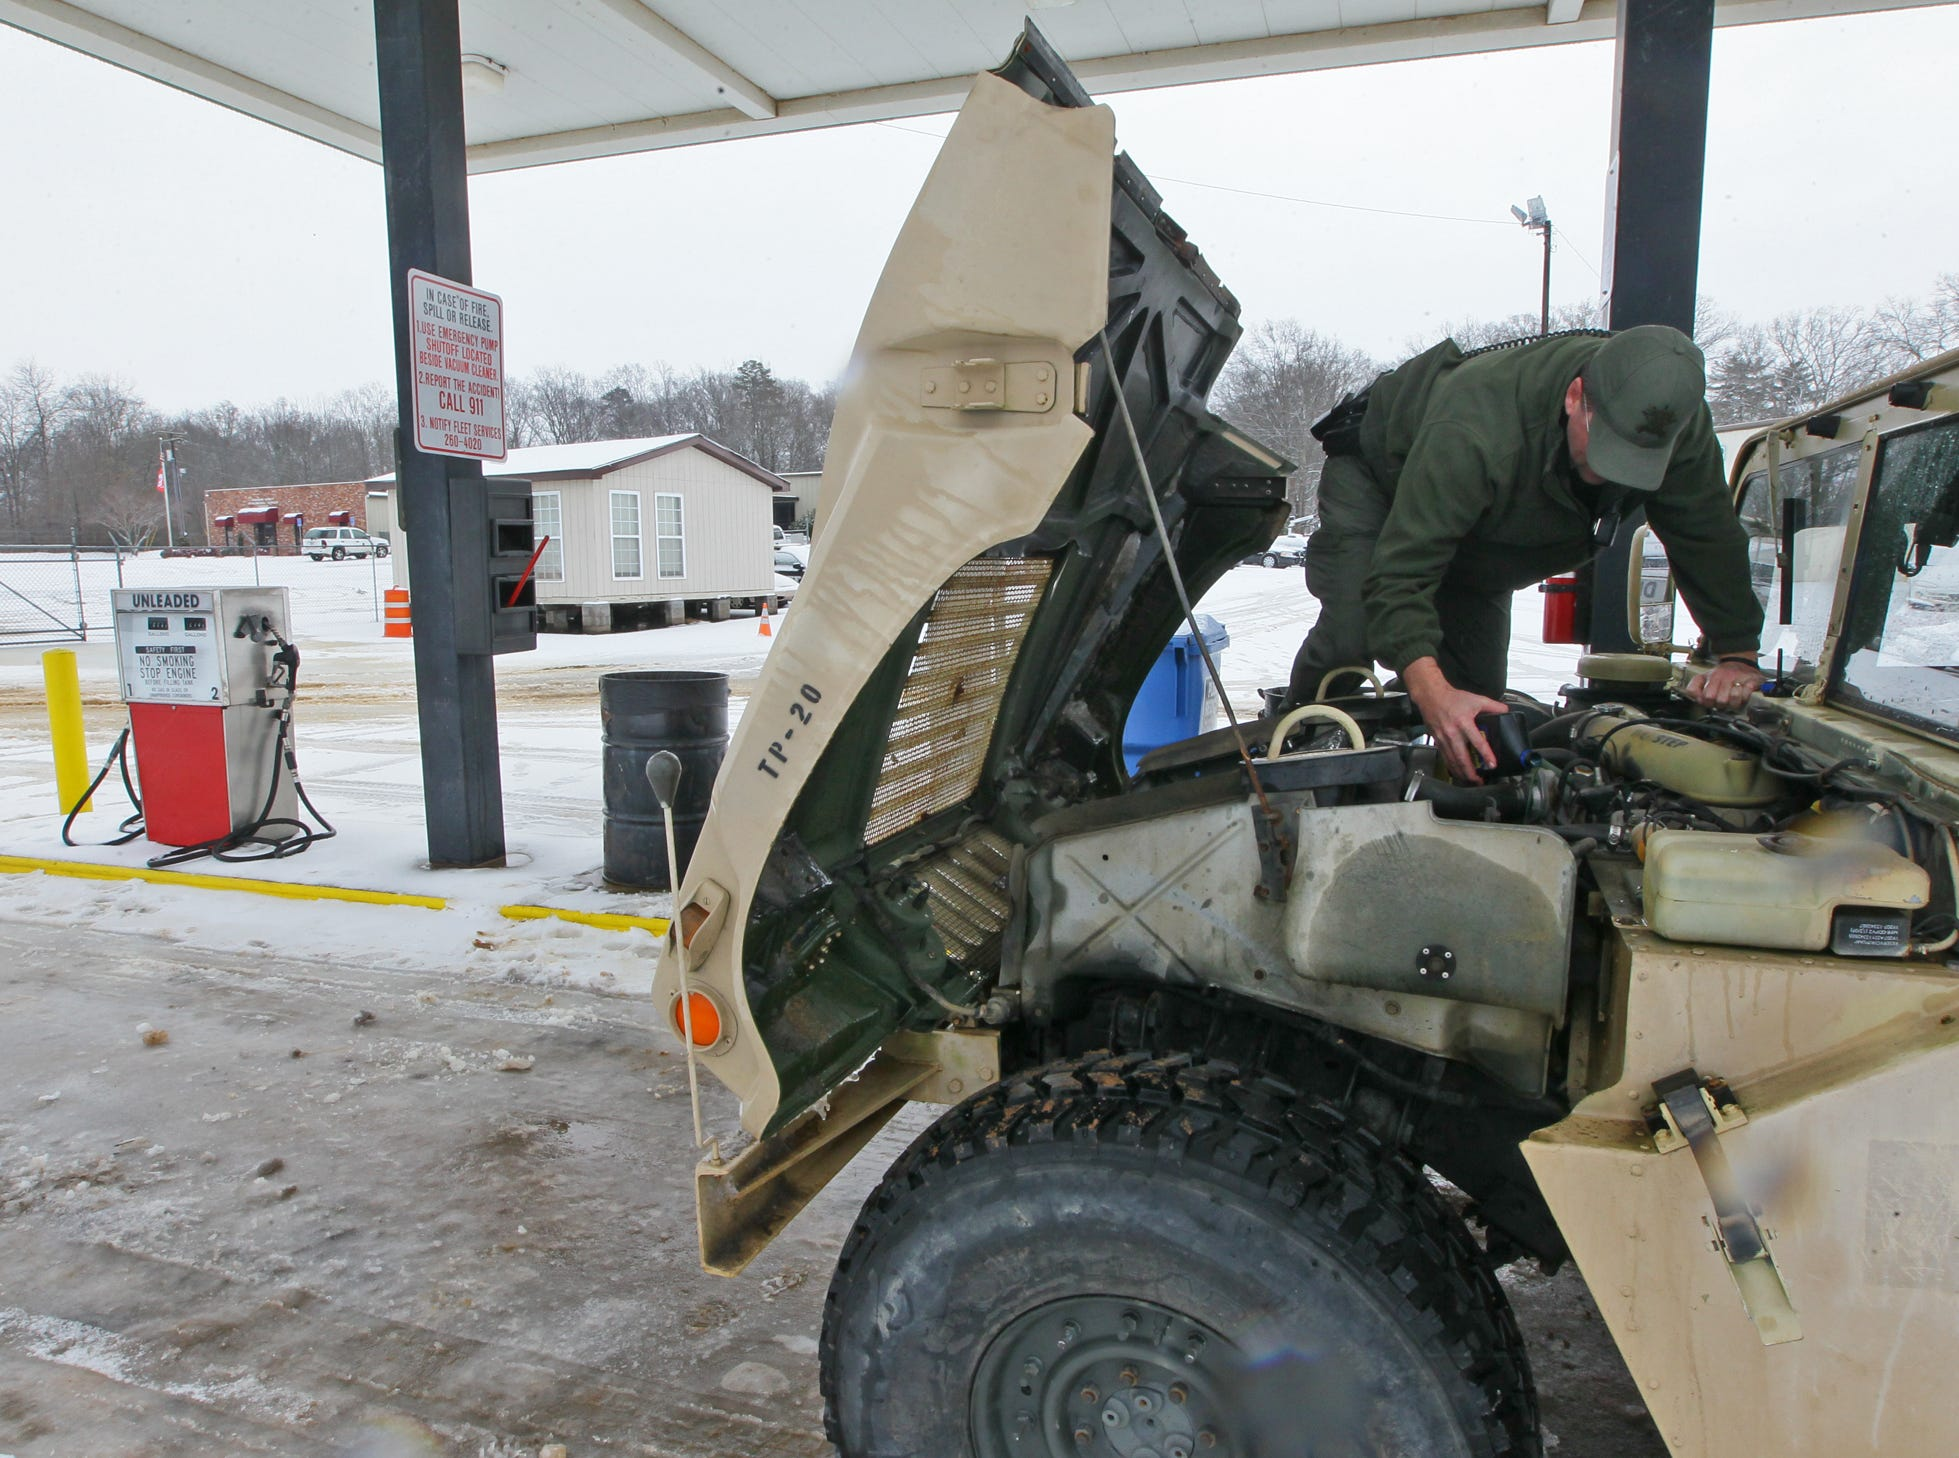 Capt Matthew Littleton, deputy emergency manager of Anderson County Emergency Services, checks transmission fluid levels on a Humvee with four-wheel drive, at the county road maintenance facility in Andersonduring the first snow of 2014.